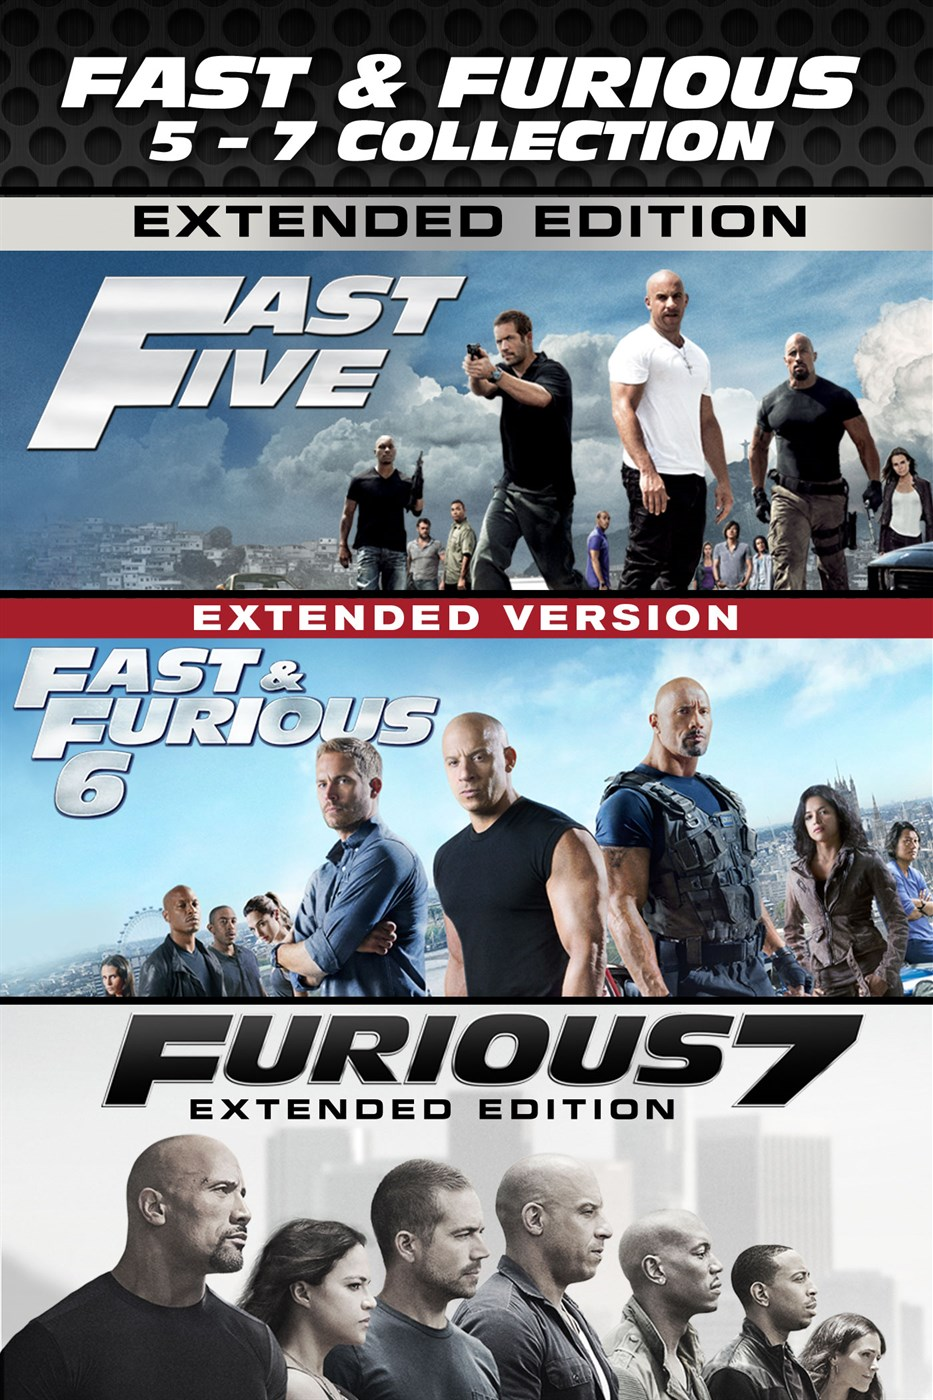 fast furious 5 7 collection microsoft store. Black Bedroom Furniture Sets. Home Design Ideas